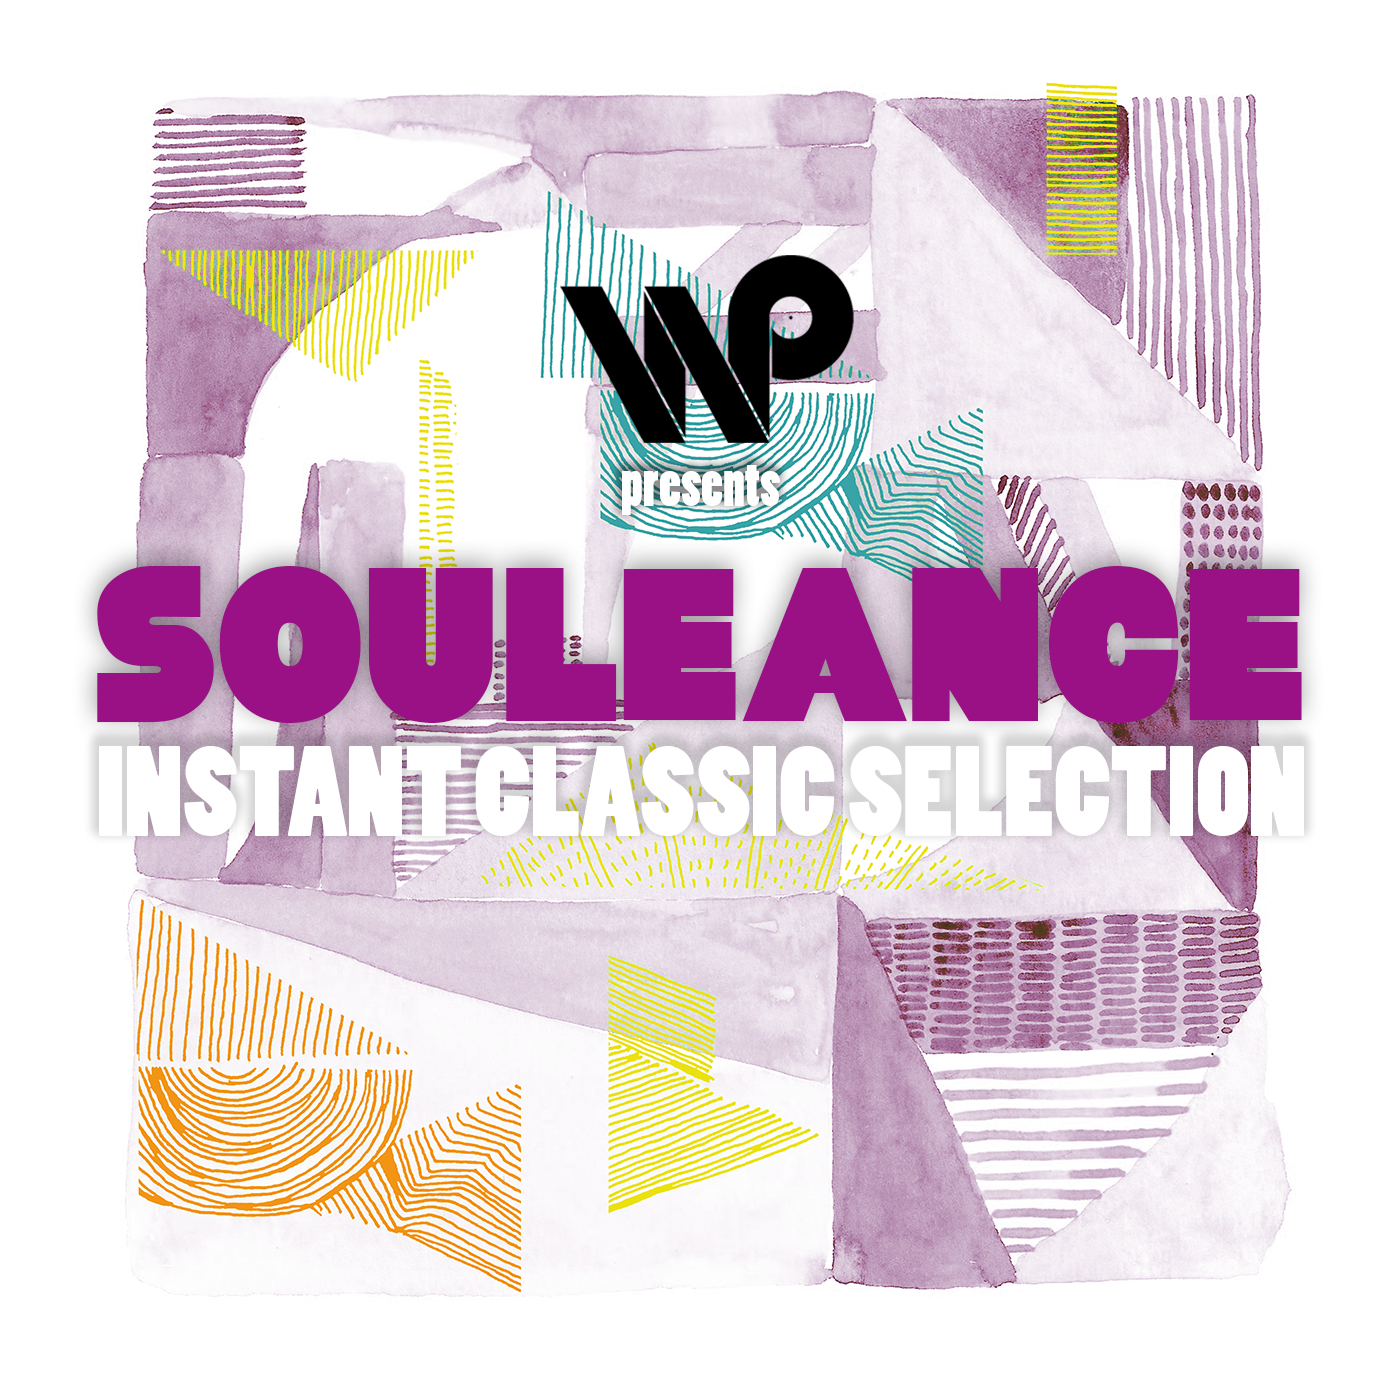 <I>Instant Classic Selection</I> by Souleance